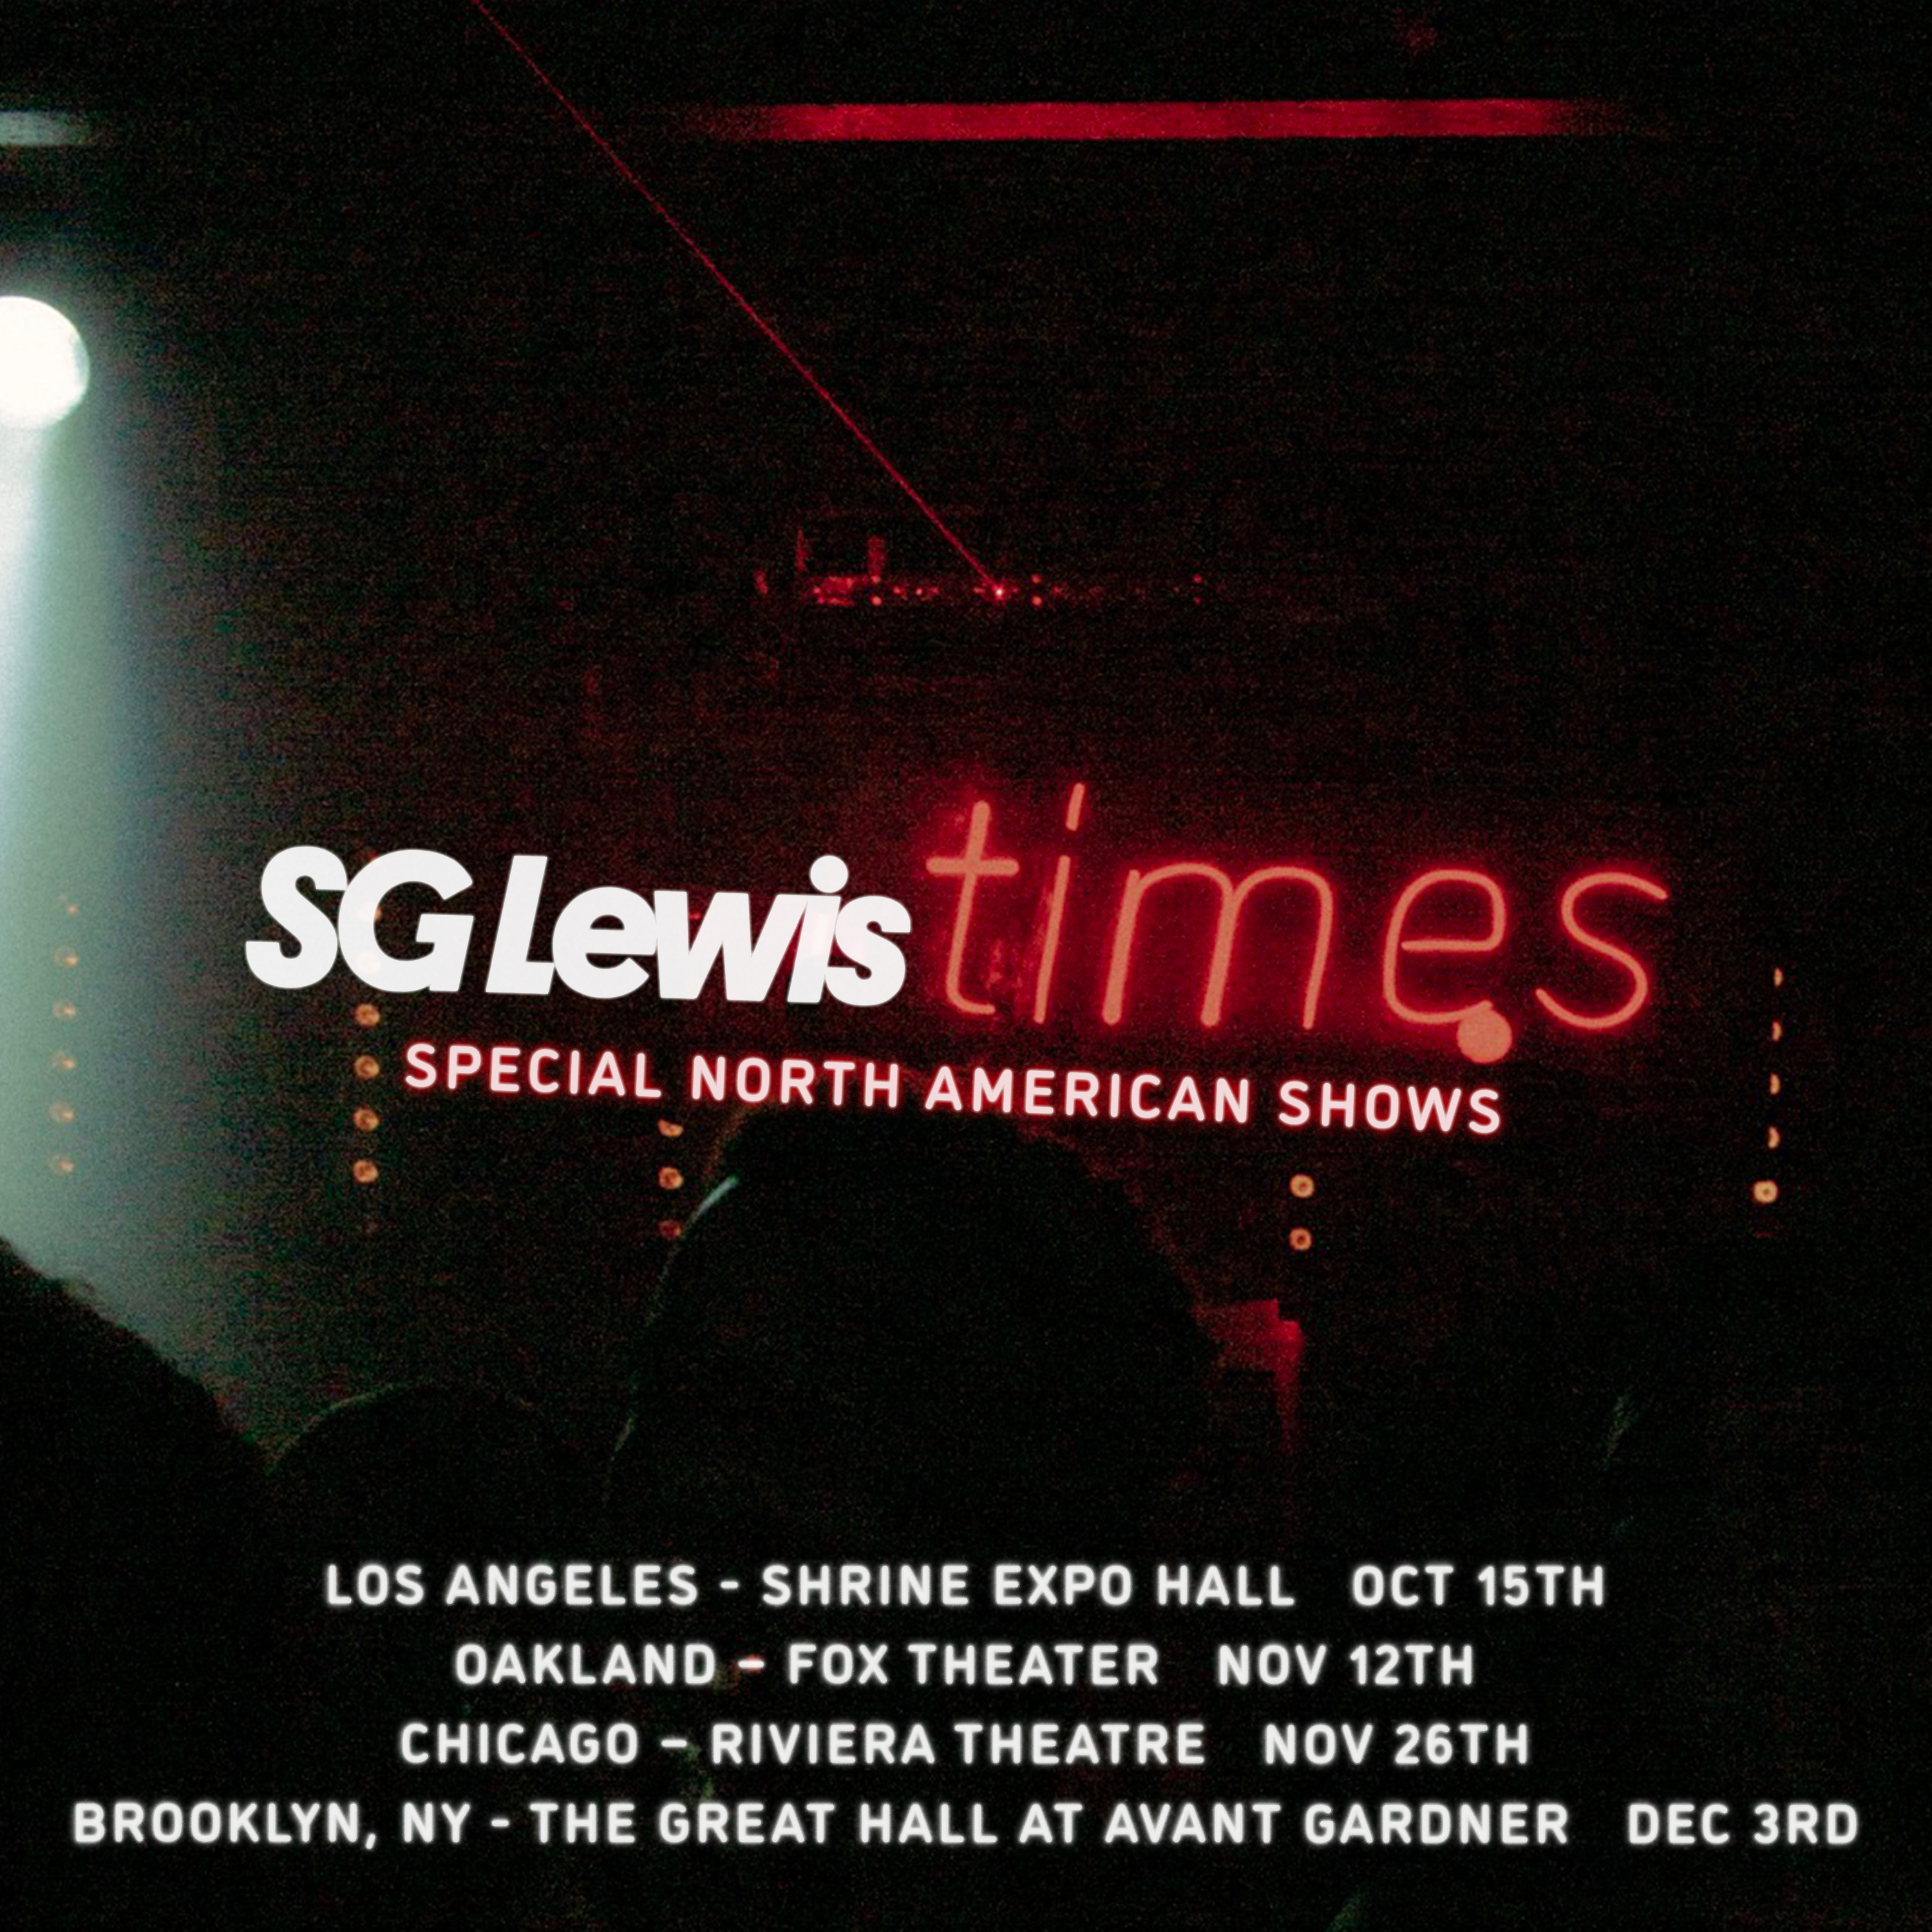 SG Lewis - Special North American Shows